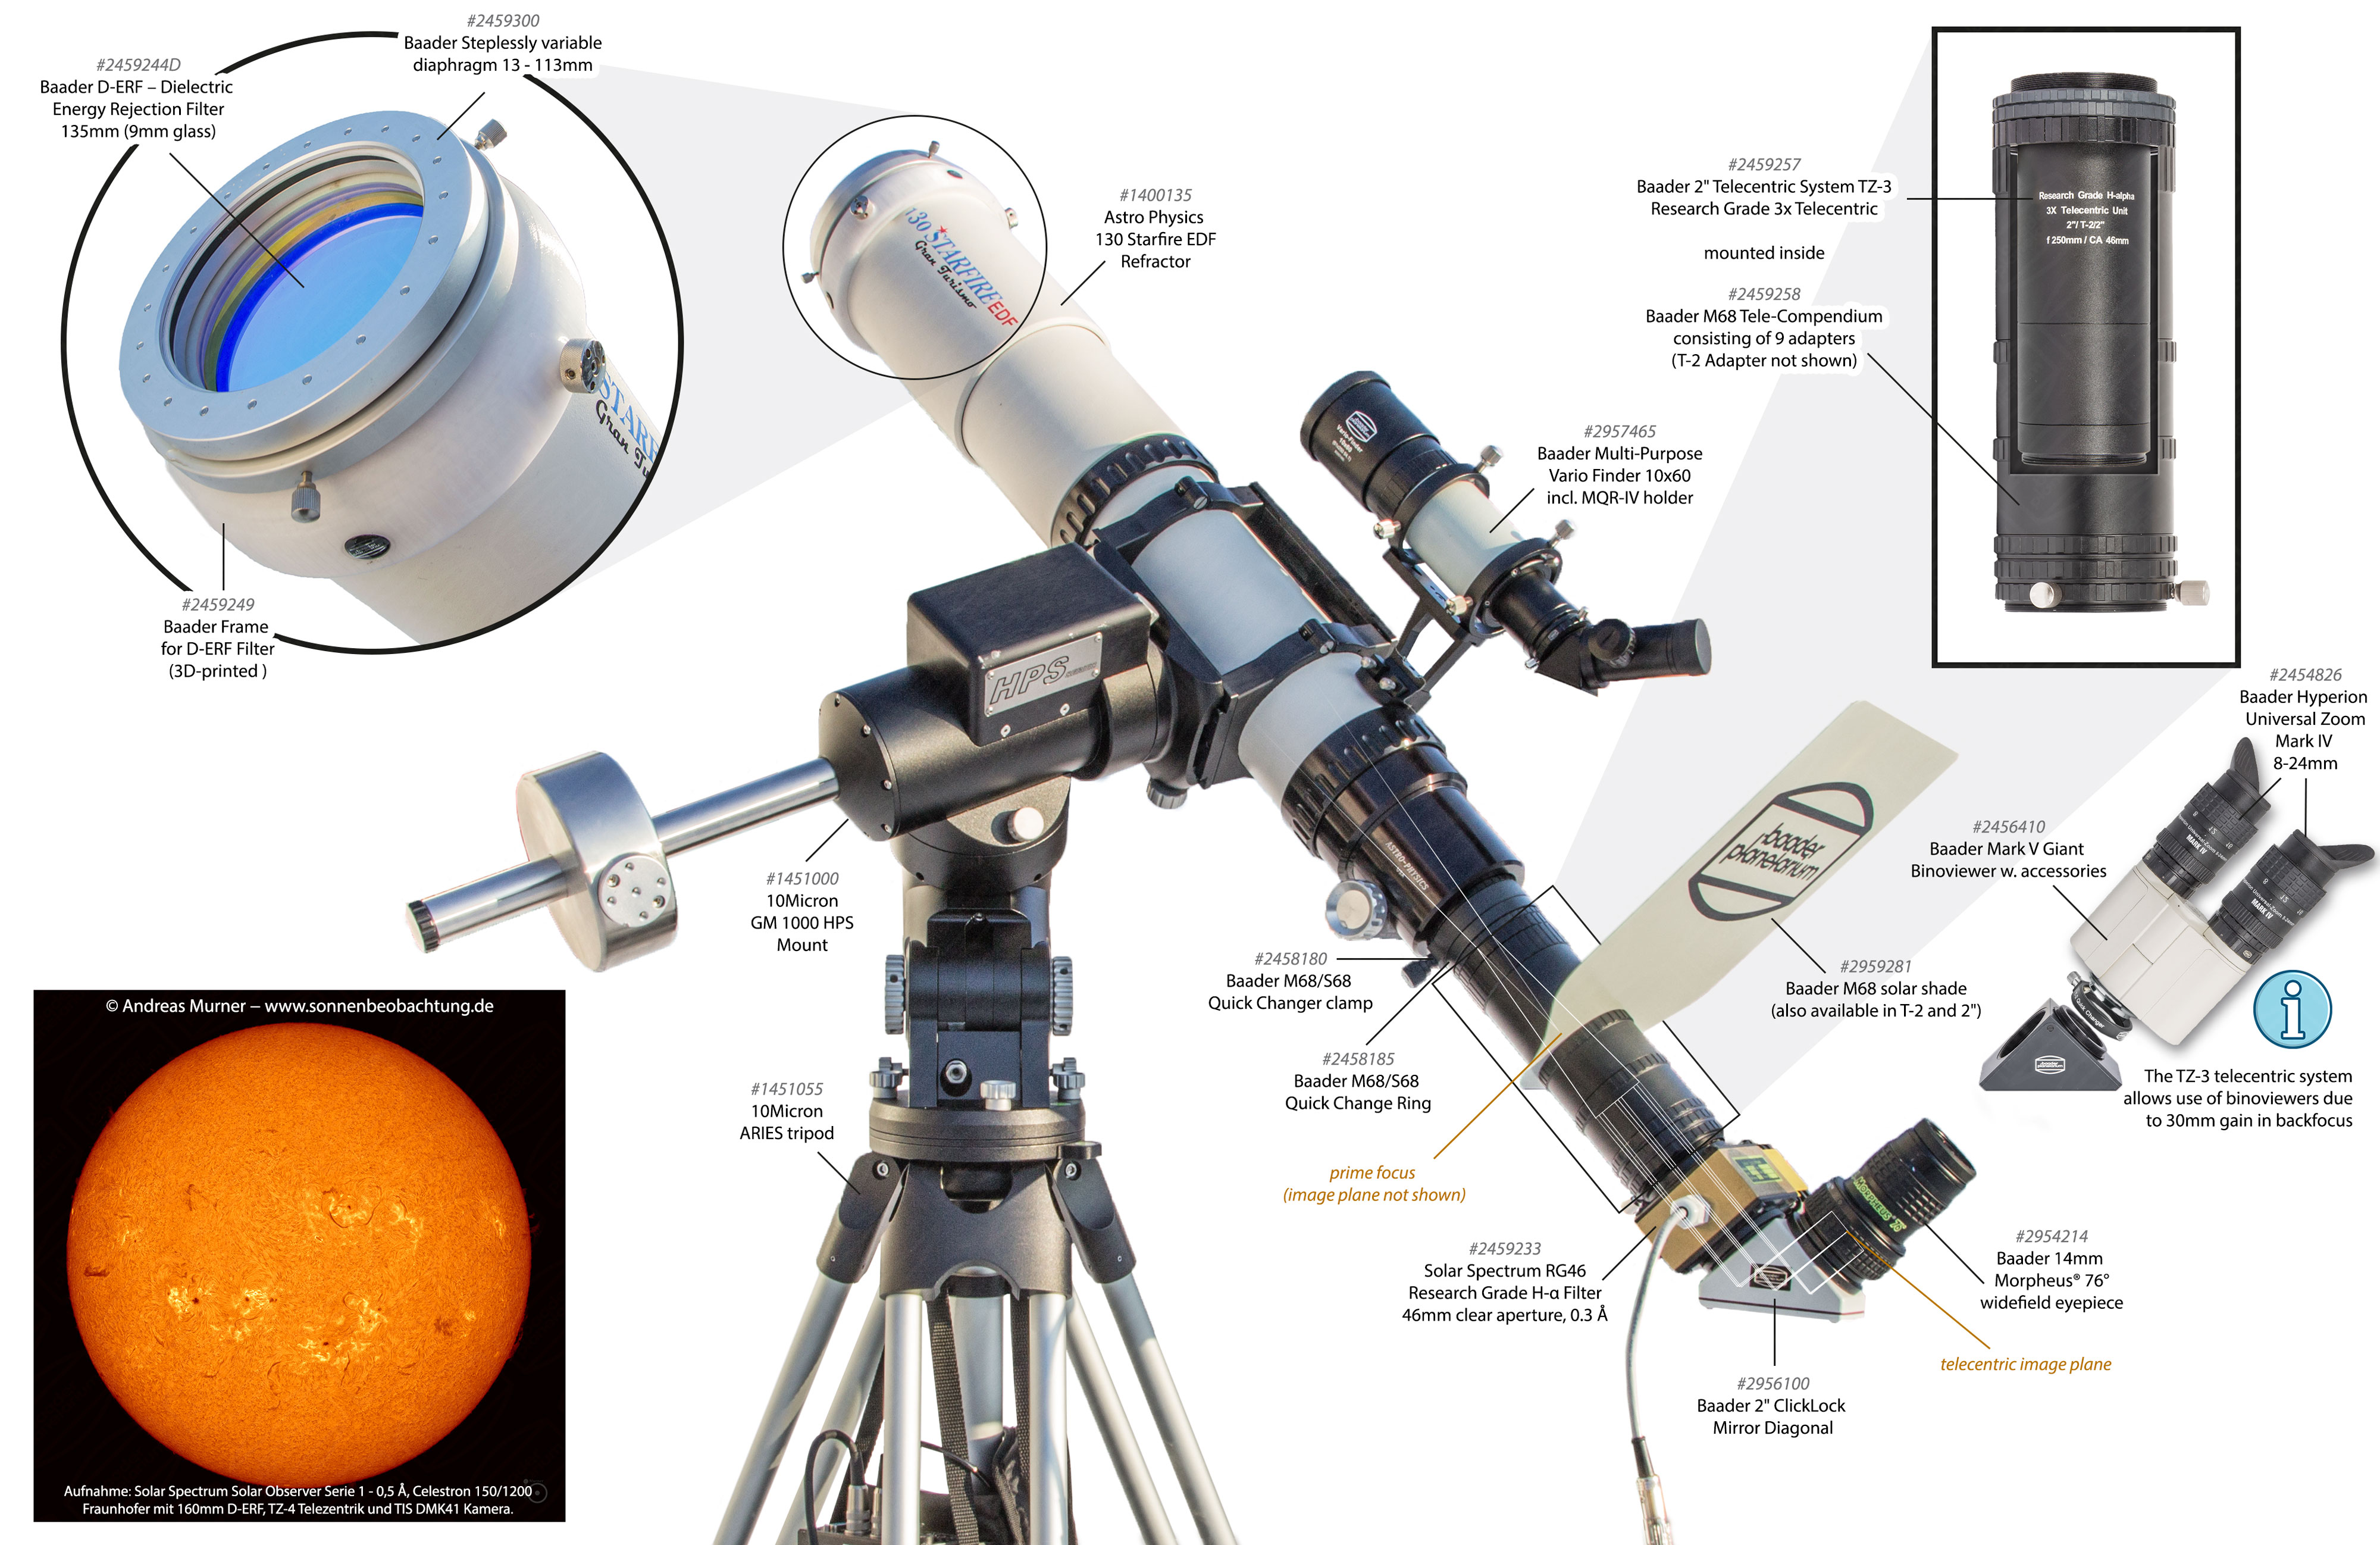 New Accessories For H Alpha Solar Observation Imaging Baader Planetarium Blog Posts